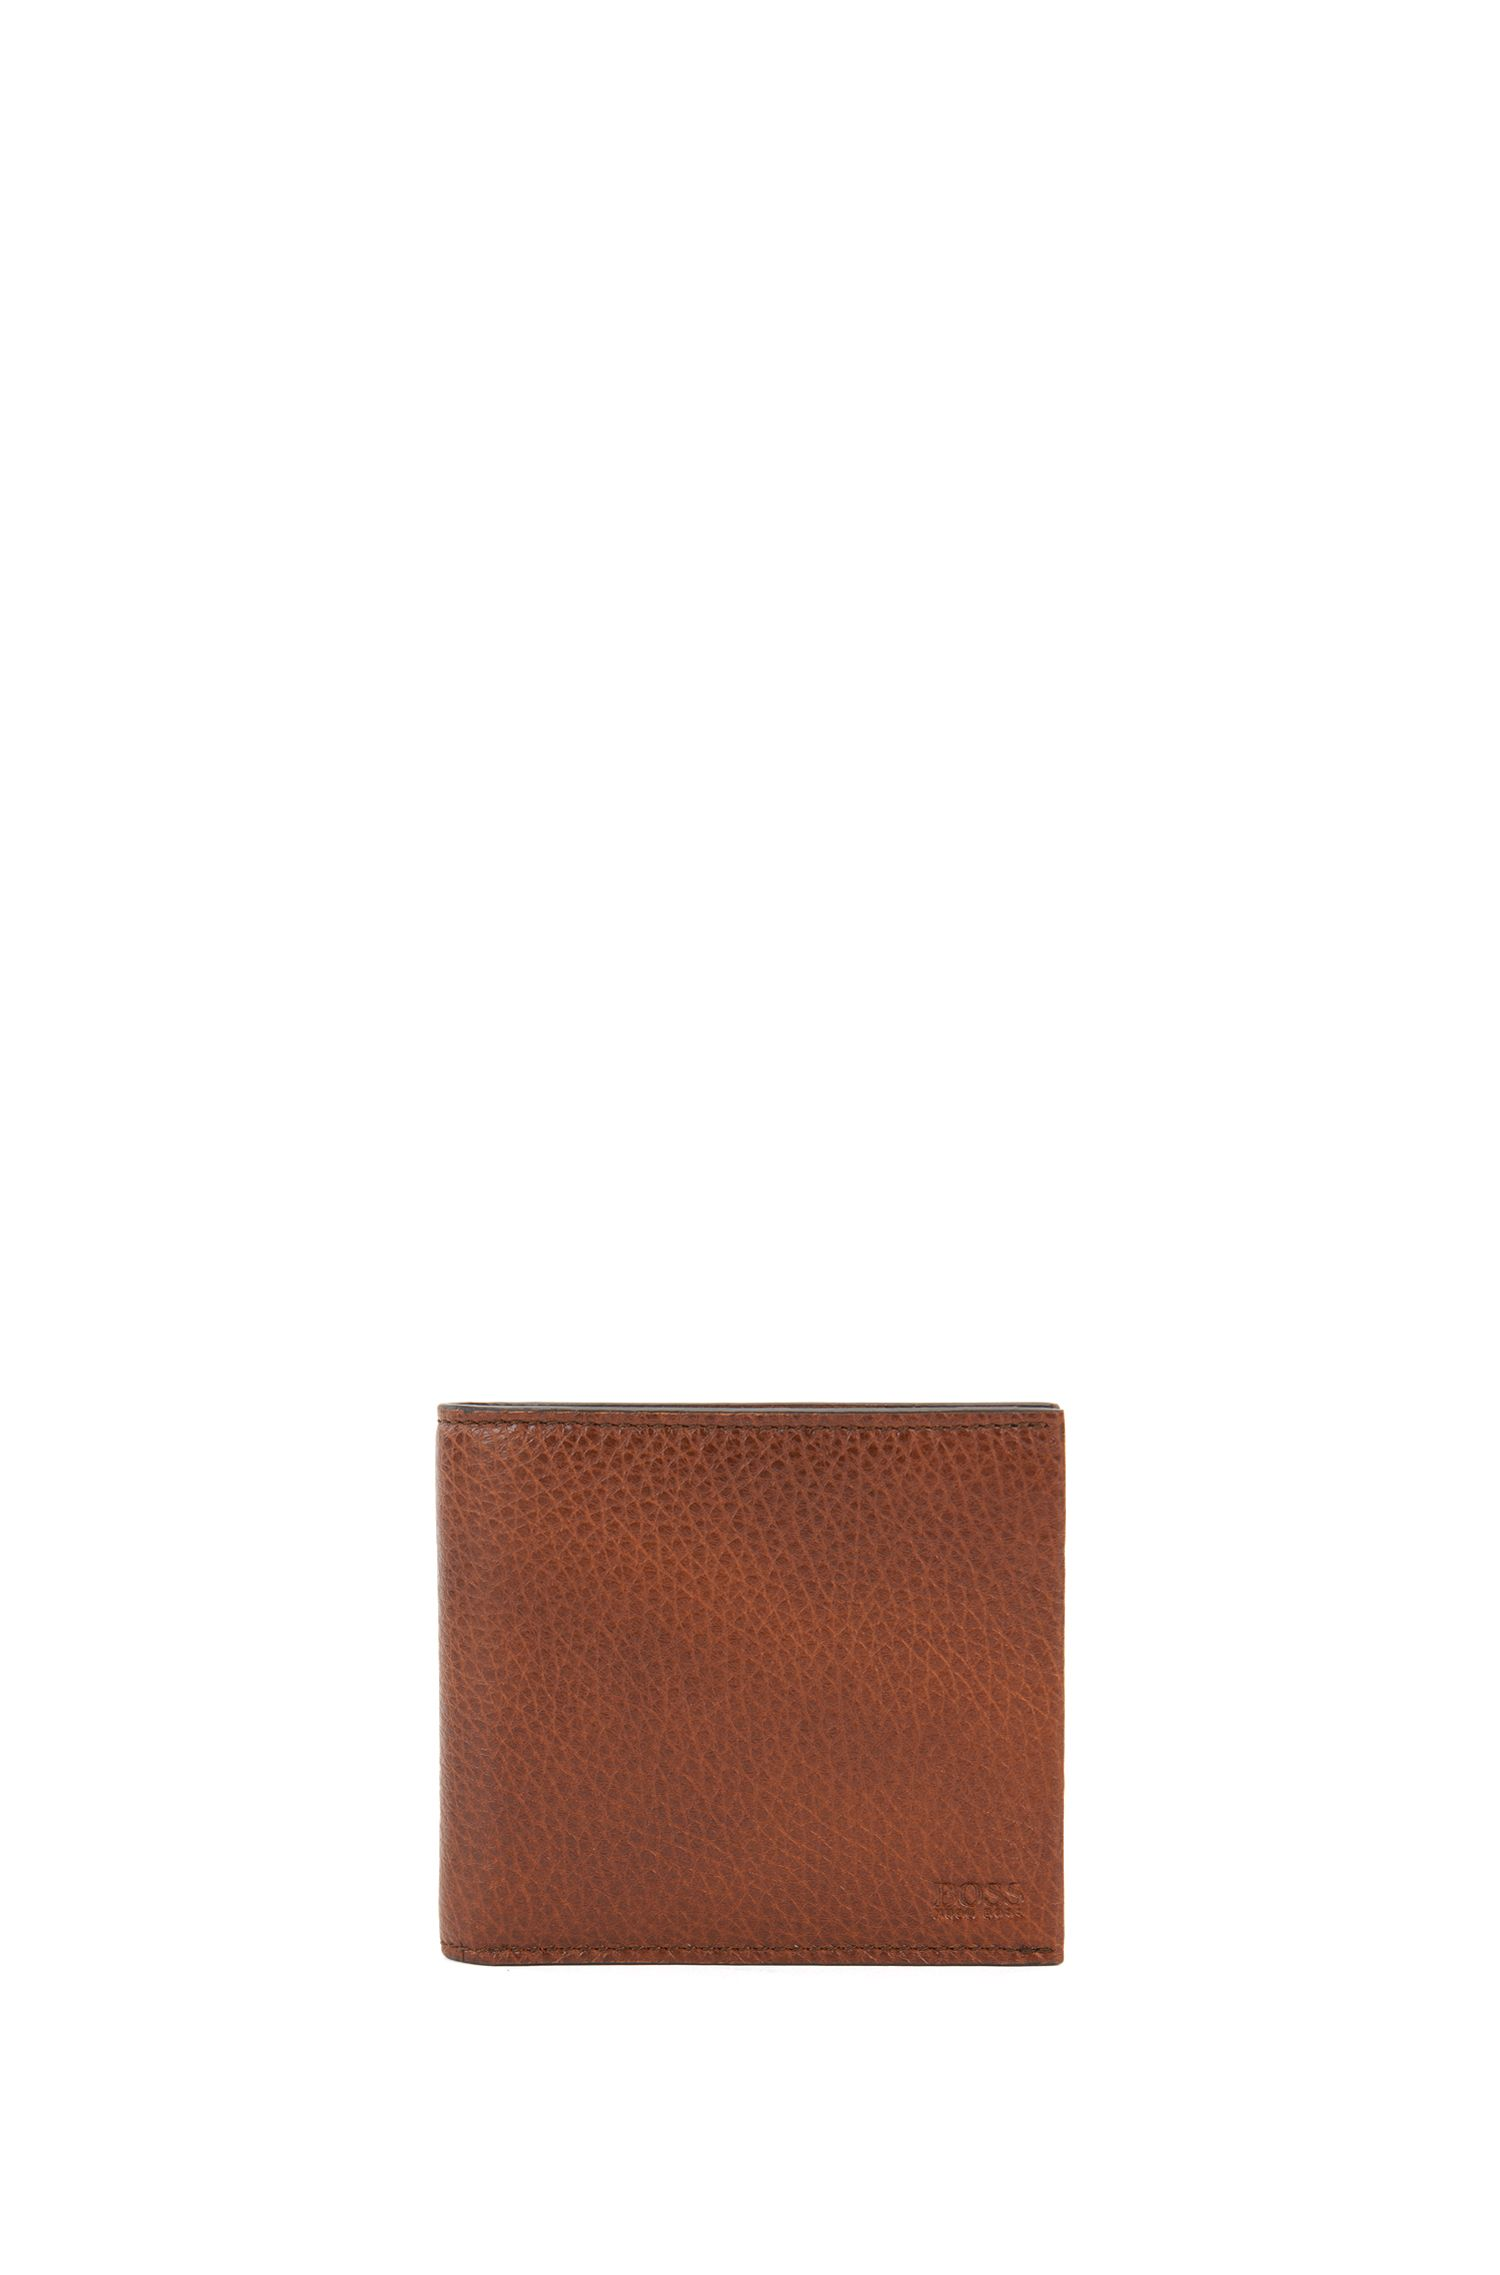 Billfold wallet with eight card slots in grained Italian leather